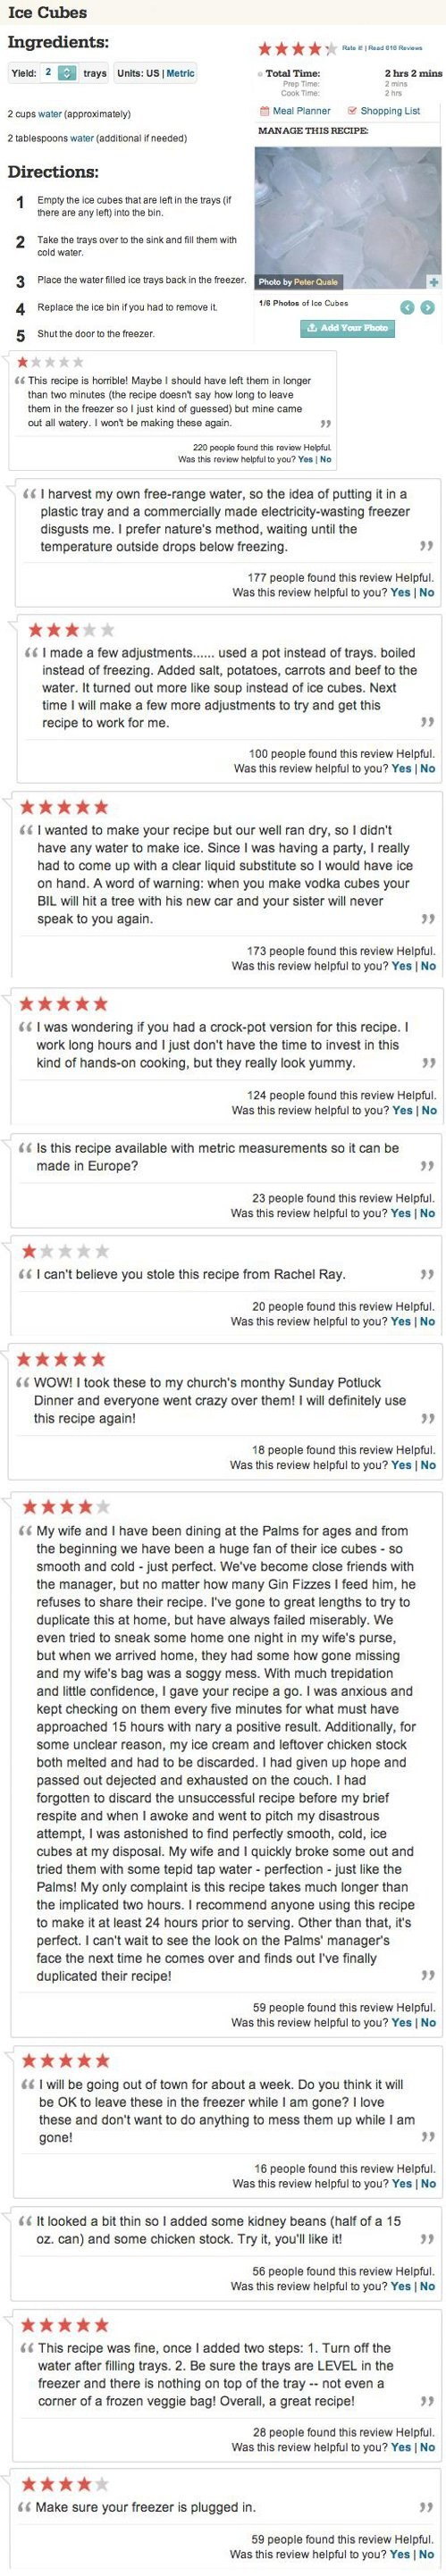 comments,recipe,food